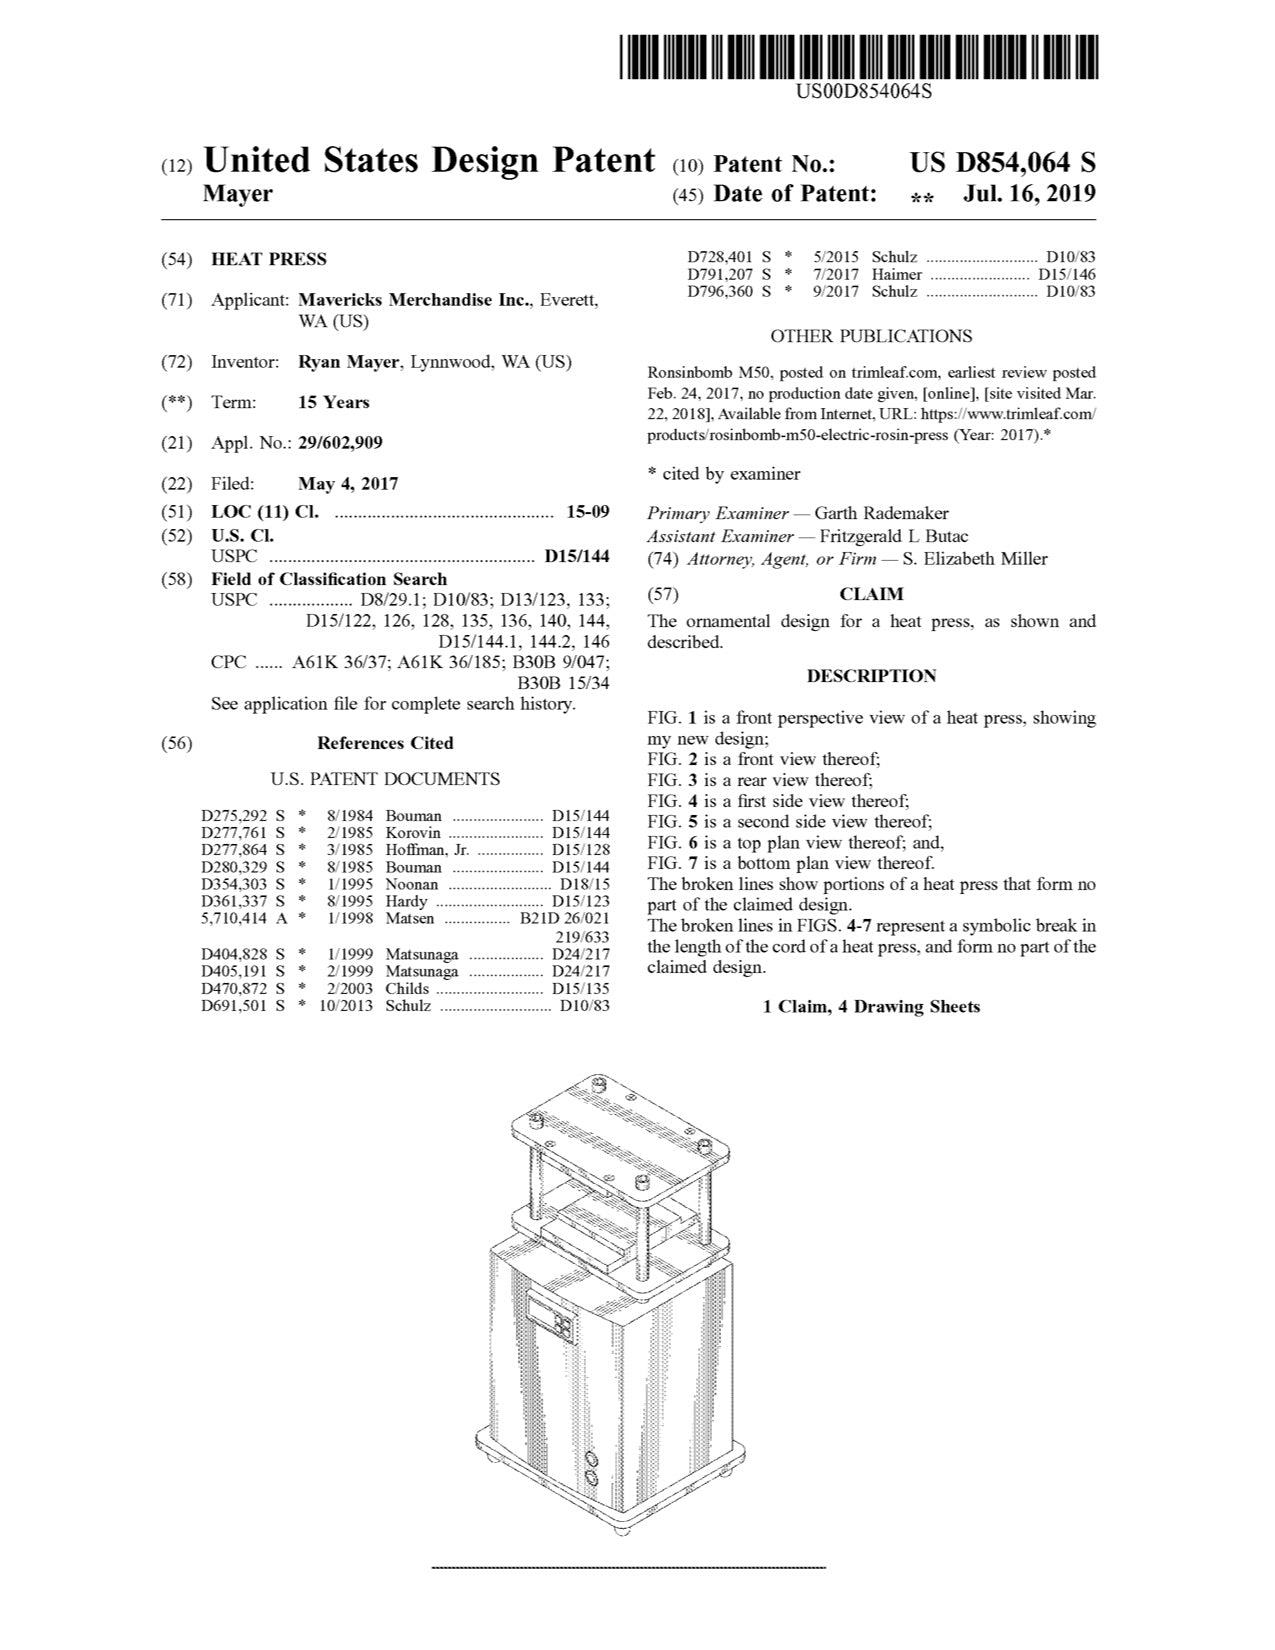 Maverick Technology Solutions Patent D854064